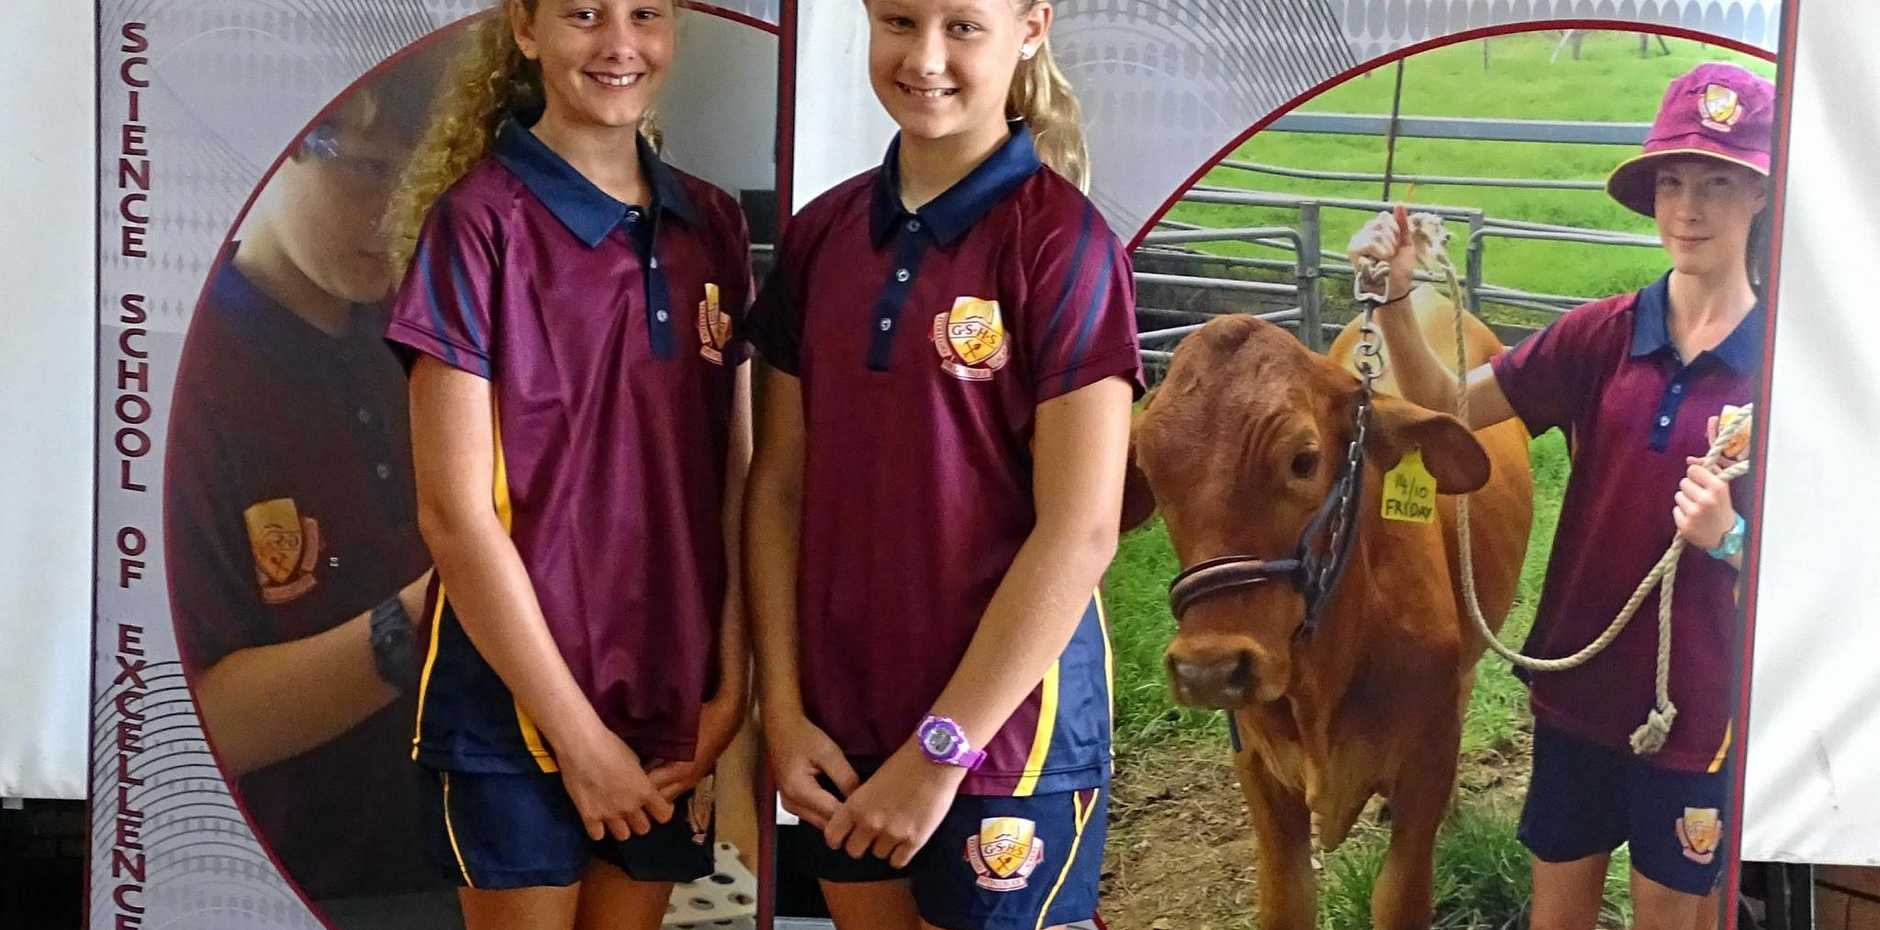 BEGINNING: Year 7 students Lily Wintle-Legge and Tahlia Patterson.